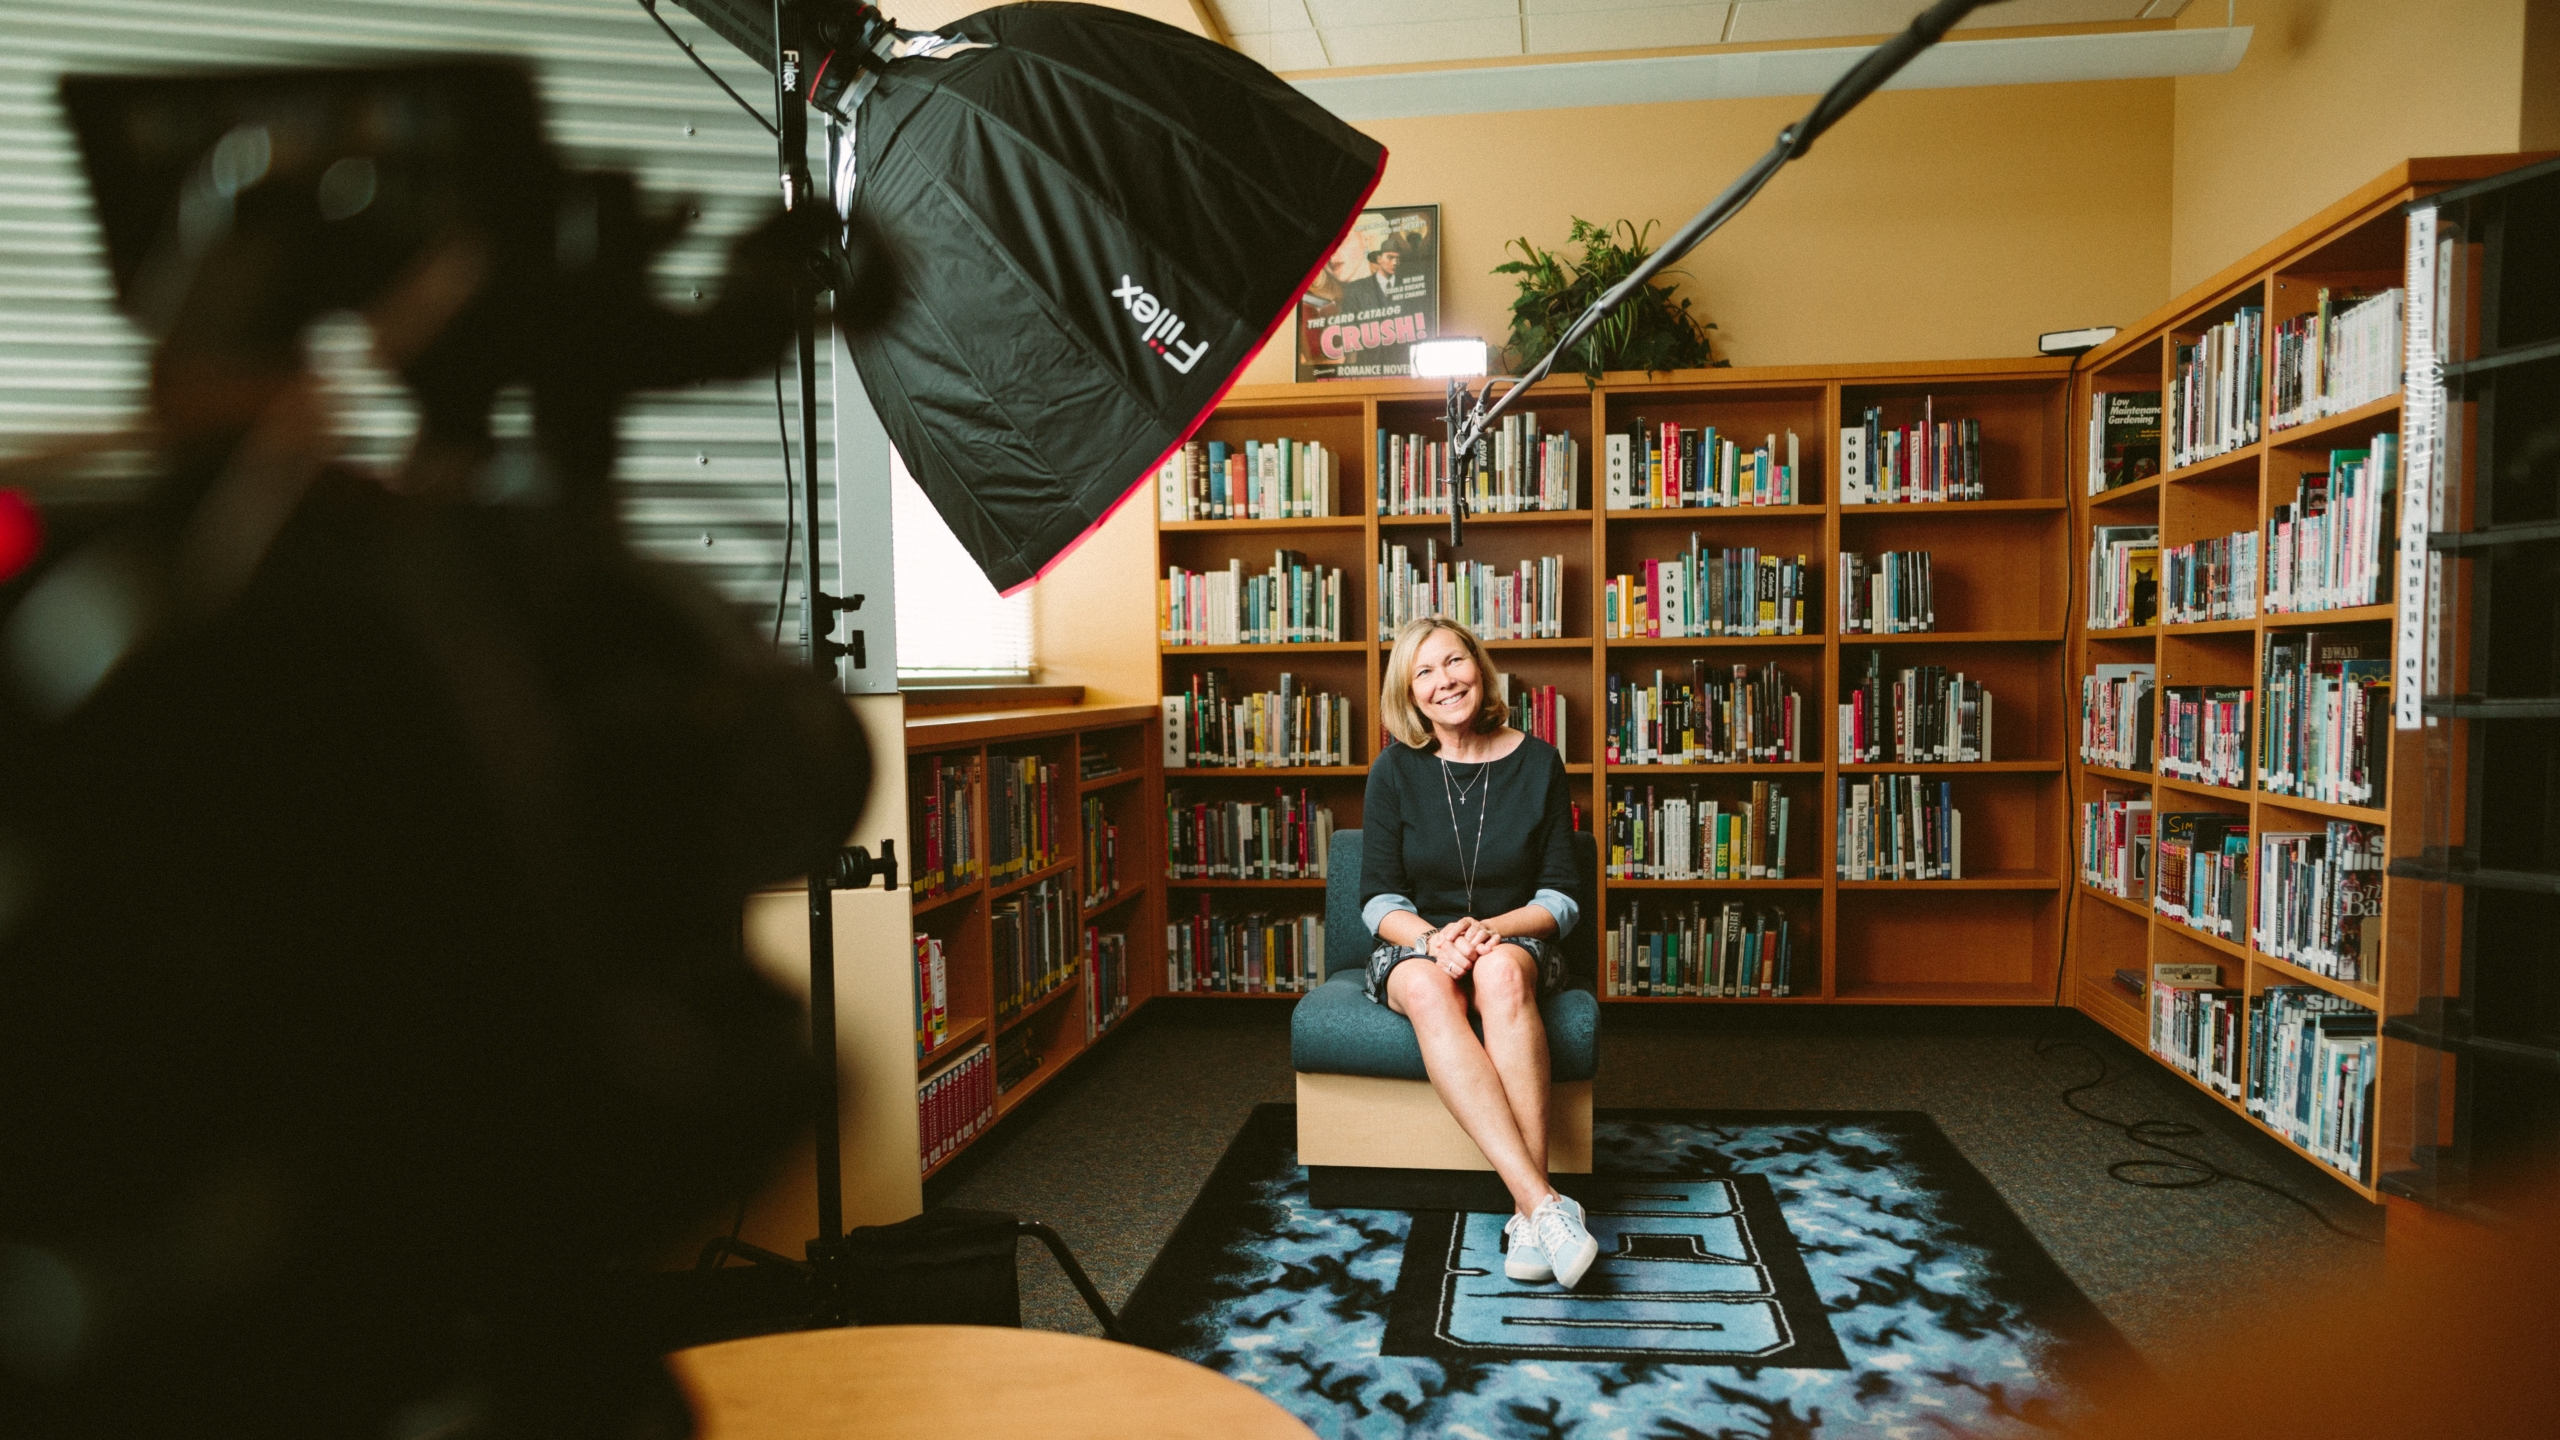 woman being interviewed in library